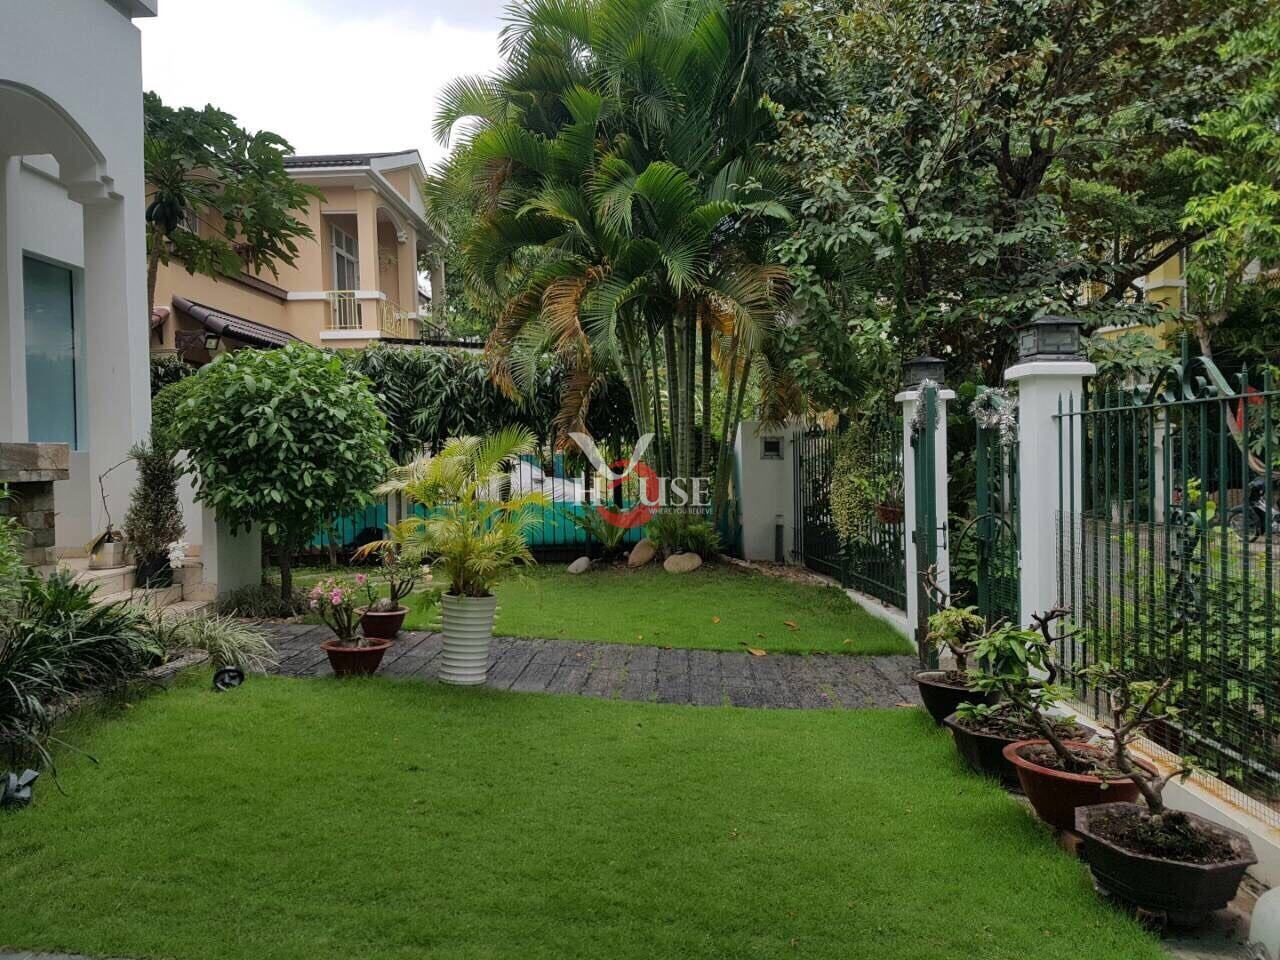 Villa For Rent In Hung Thai, center of Phu My Hung, District 7 (1)